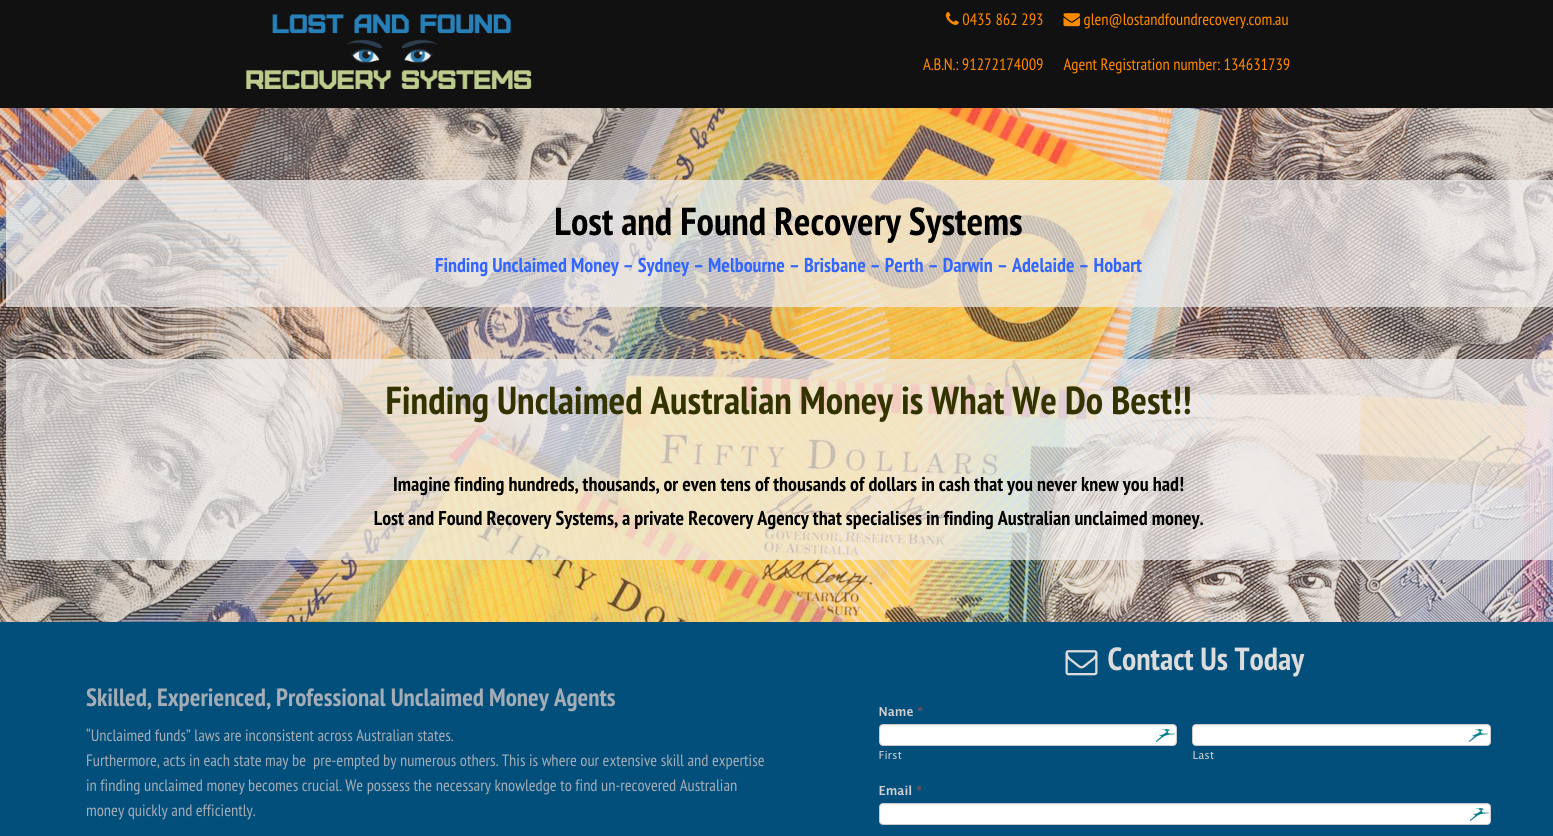 Lost and Found Recovery Systems